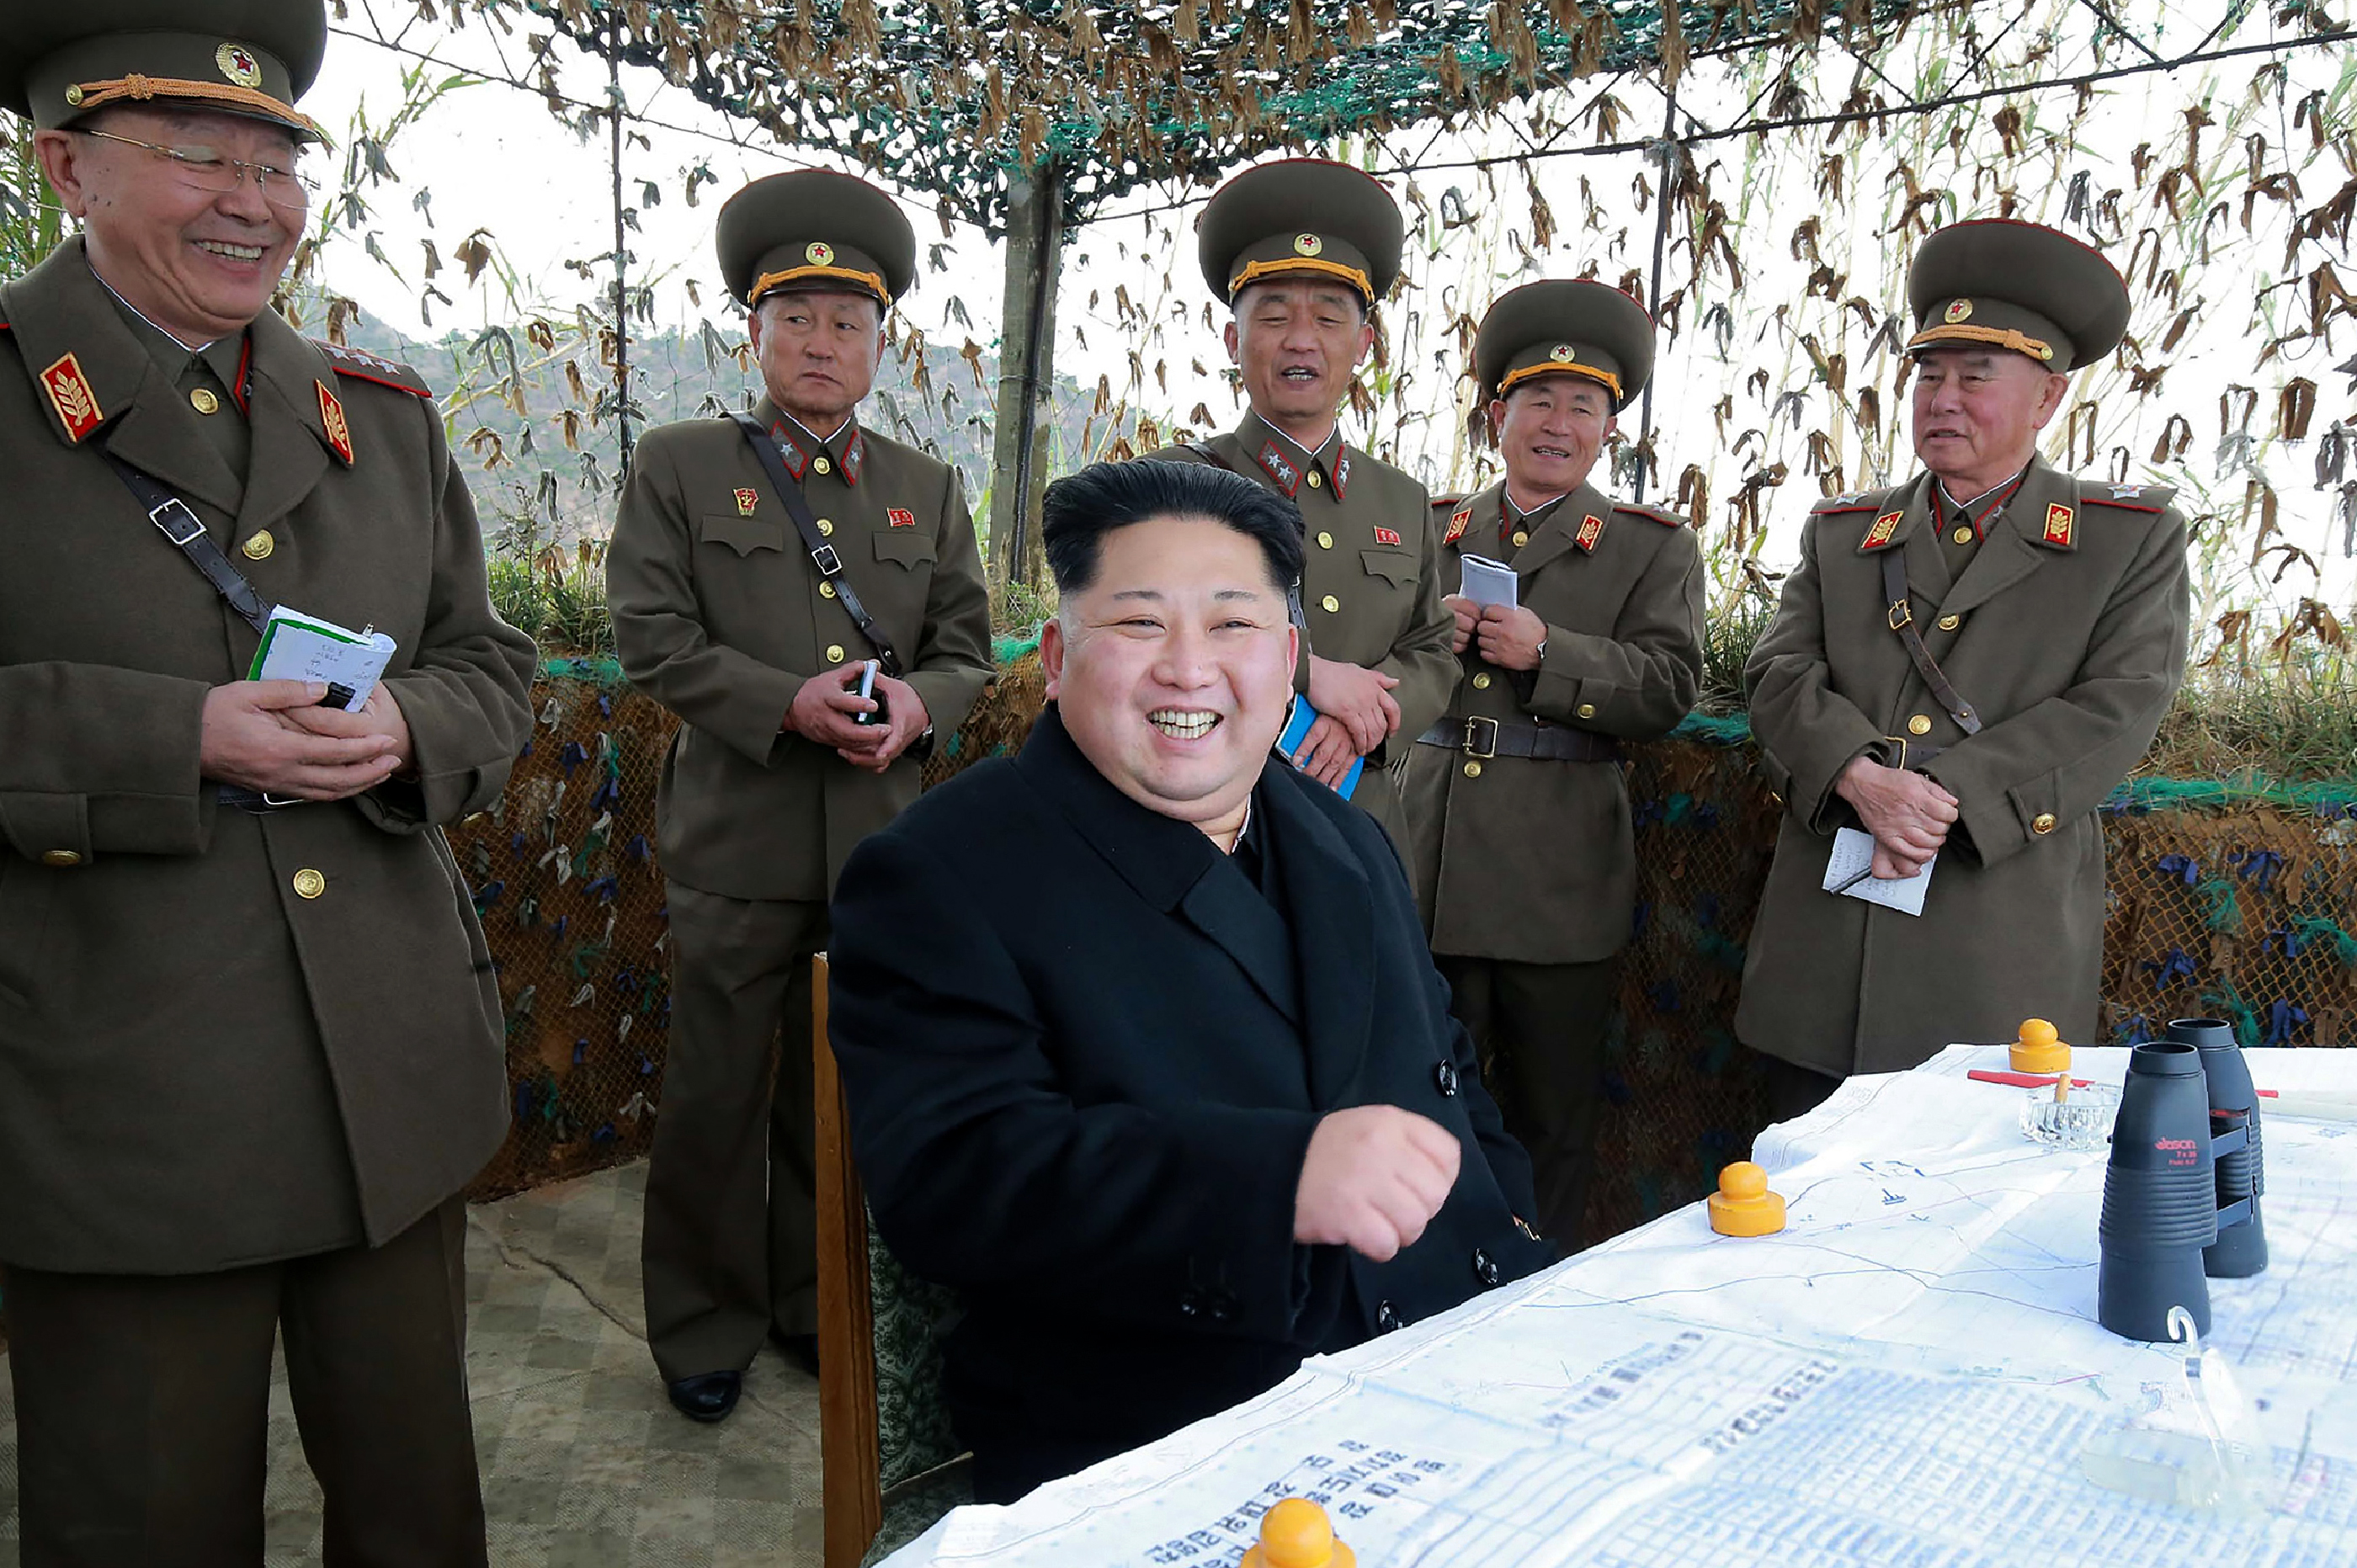 This undated photo released by North Korea's official Korean Central News Agency (KCNA) on November 11, 2016 shows North Korean leader Kim Jong-Un (C) at the defence detachment on Mahap Islet in Ongjin County, South Hwanghae.  China has reportedly banned a nickname that refers to the North Korean leader from its main search engine and social media sites.